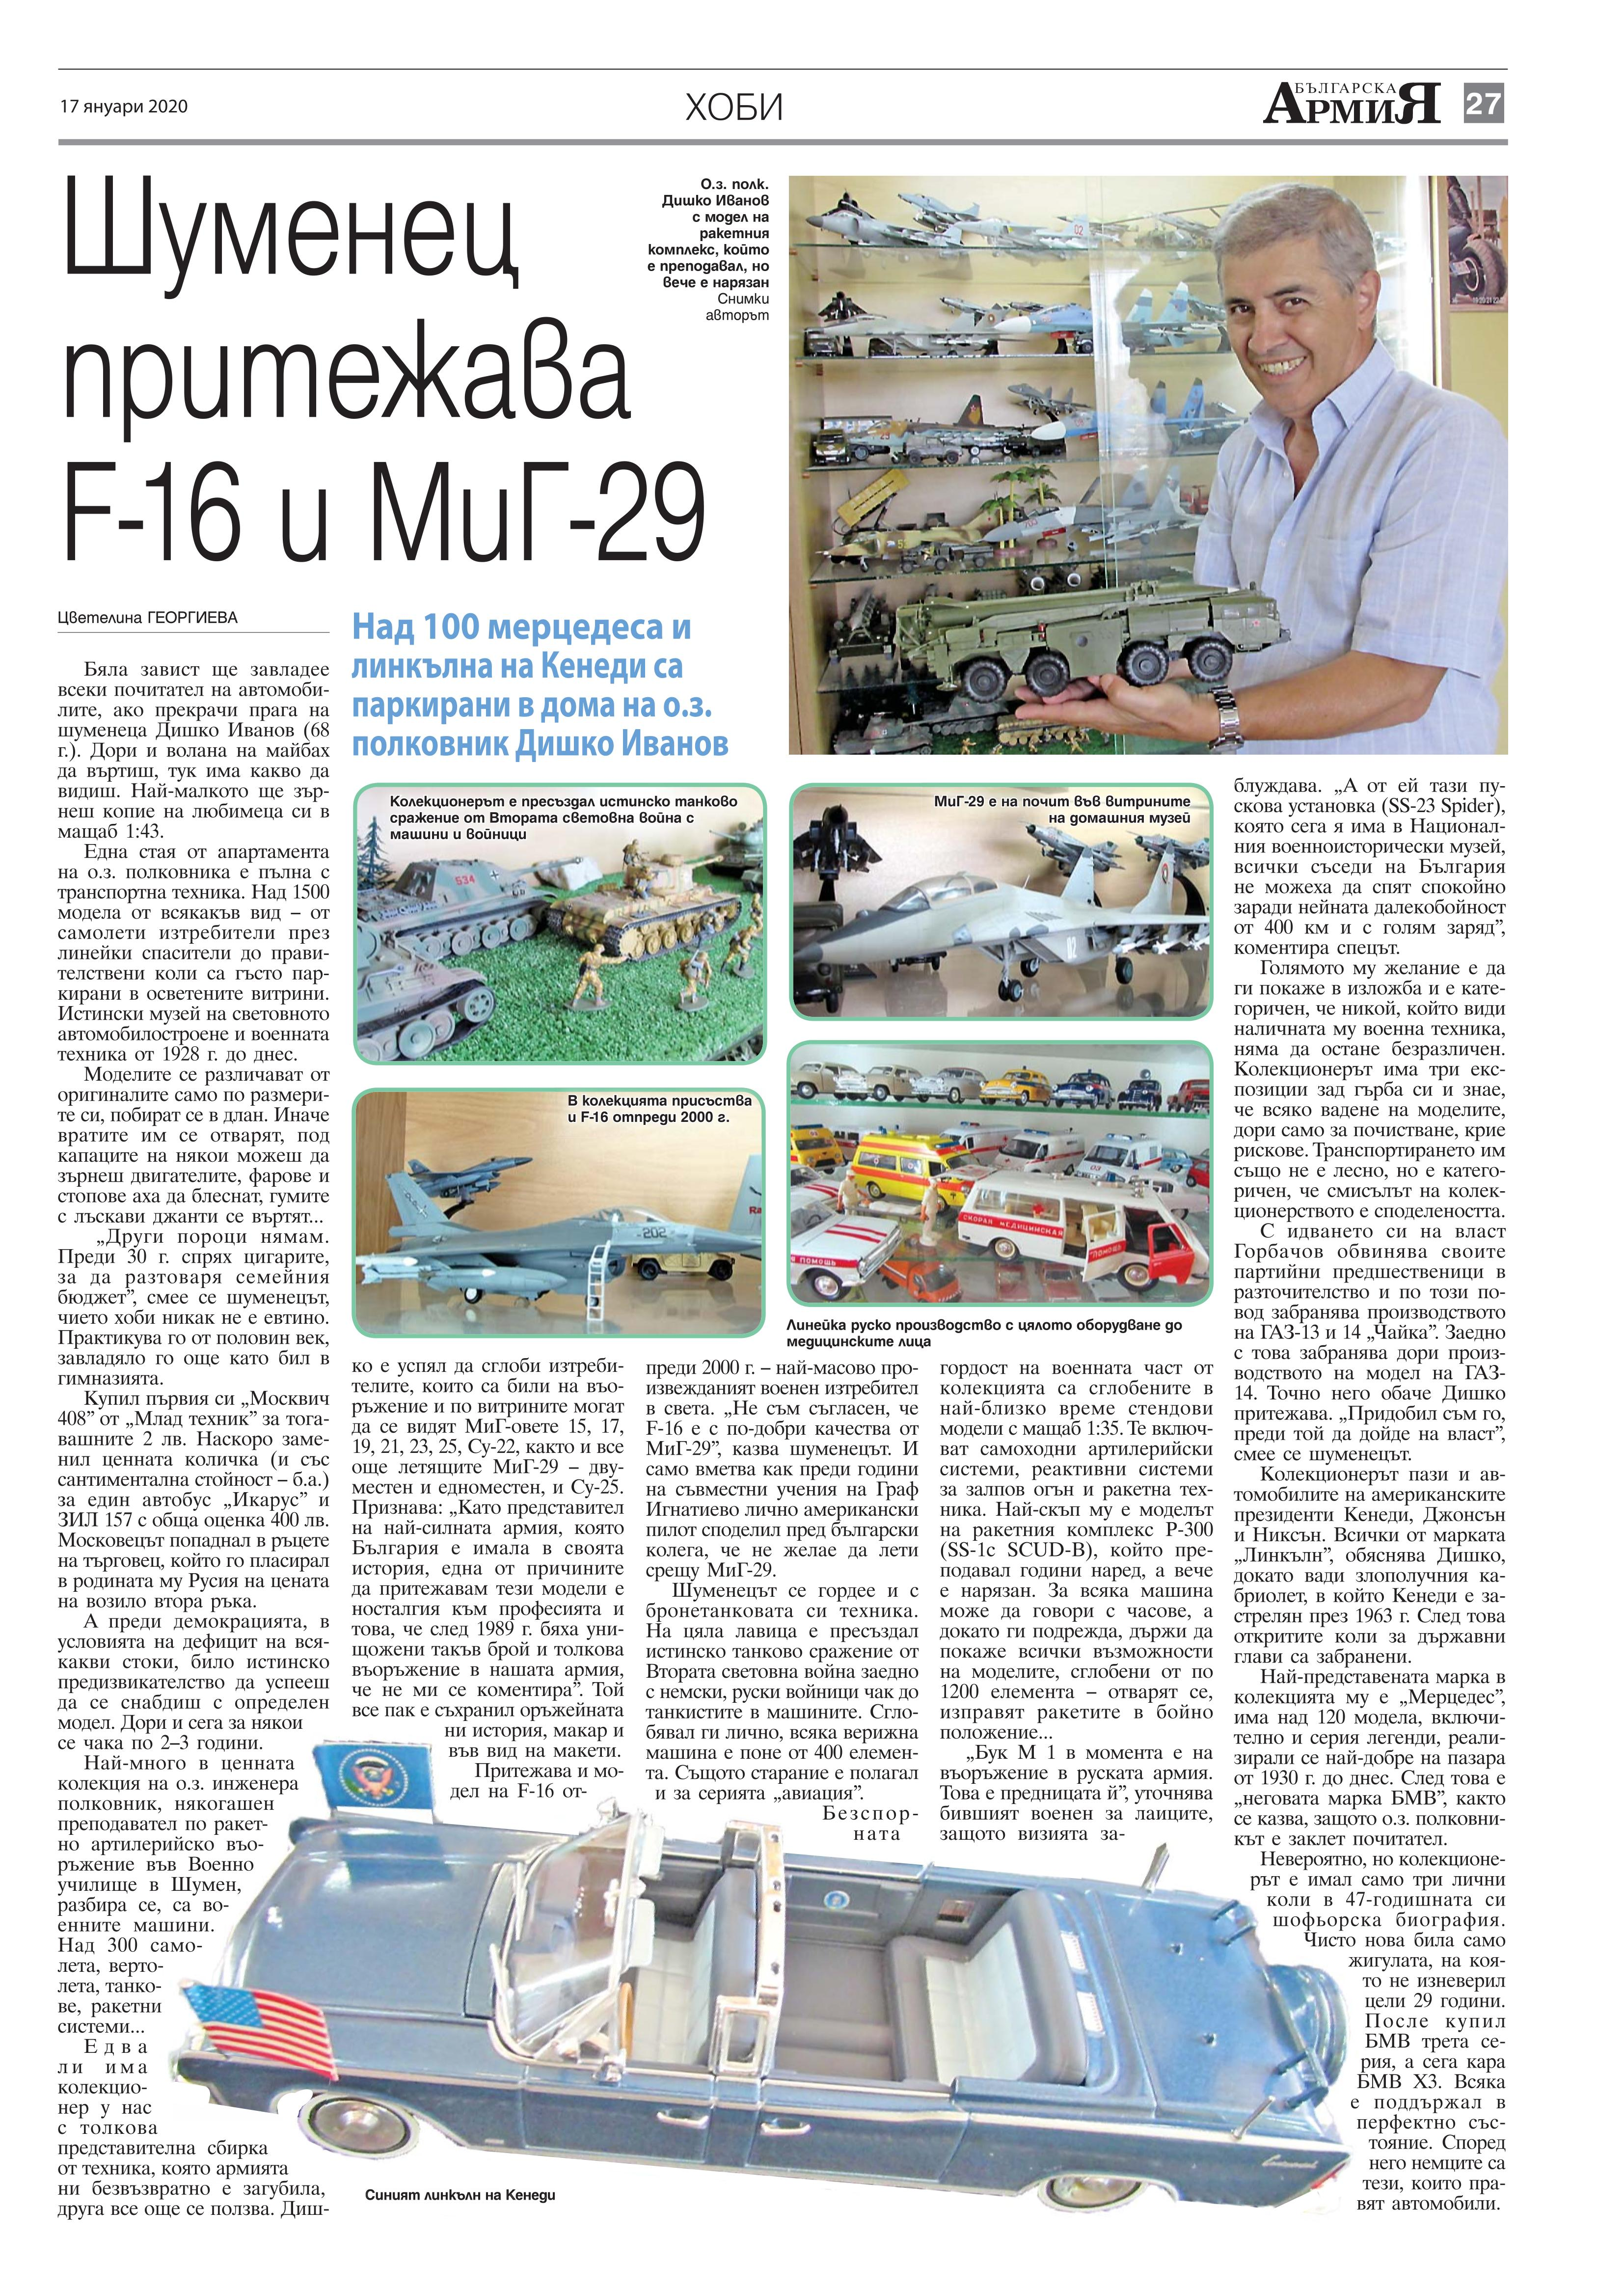 https://armymedia.bg/wp-content/uploads/2015/06/27.page1_-103.jpg